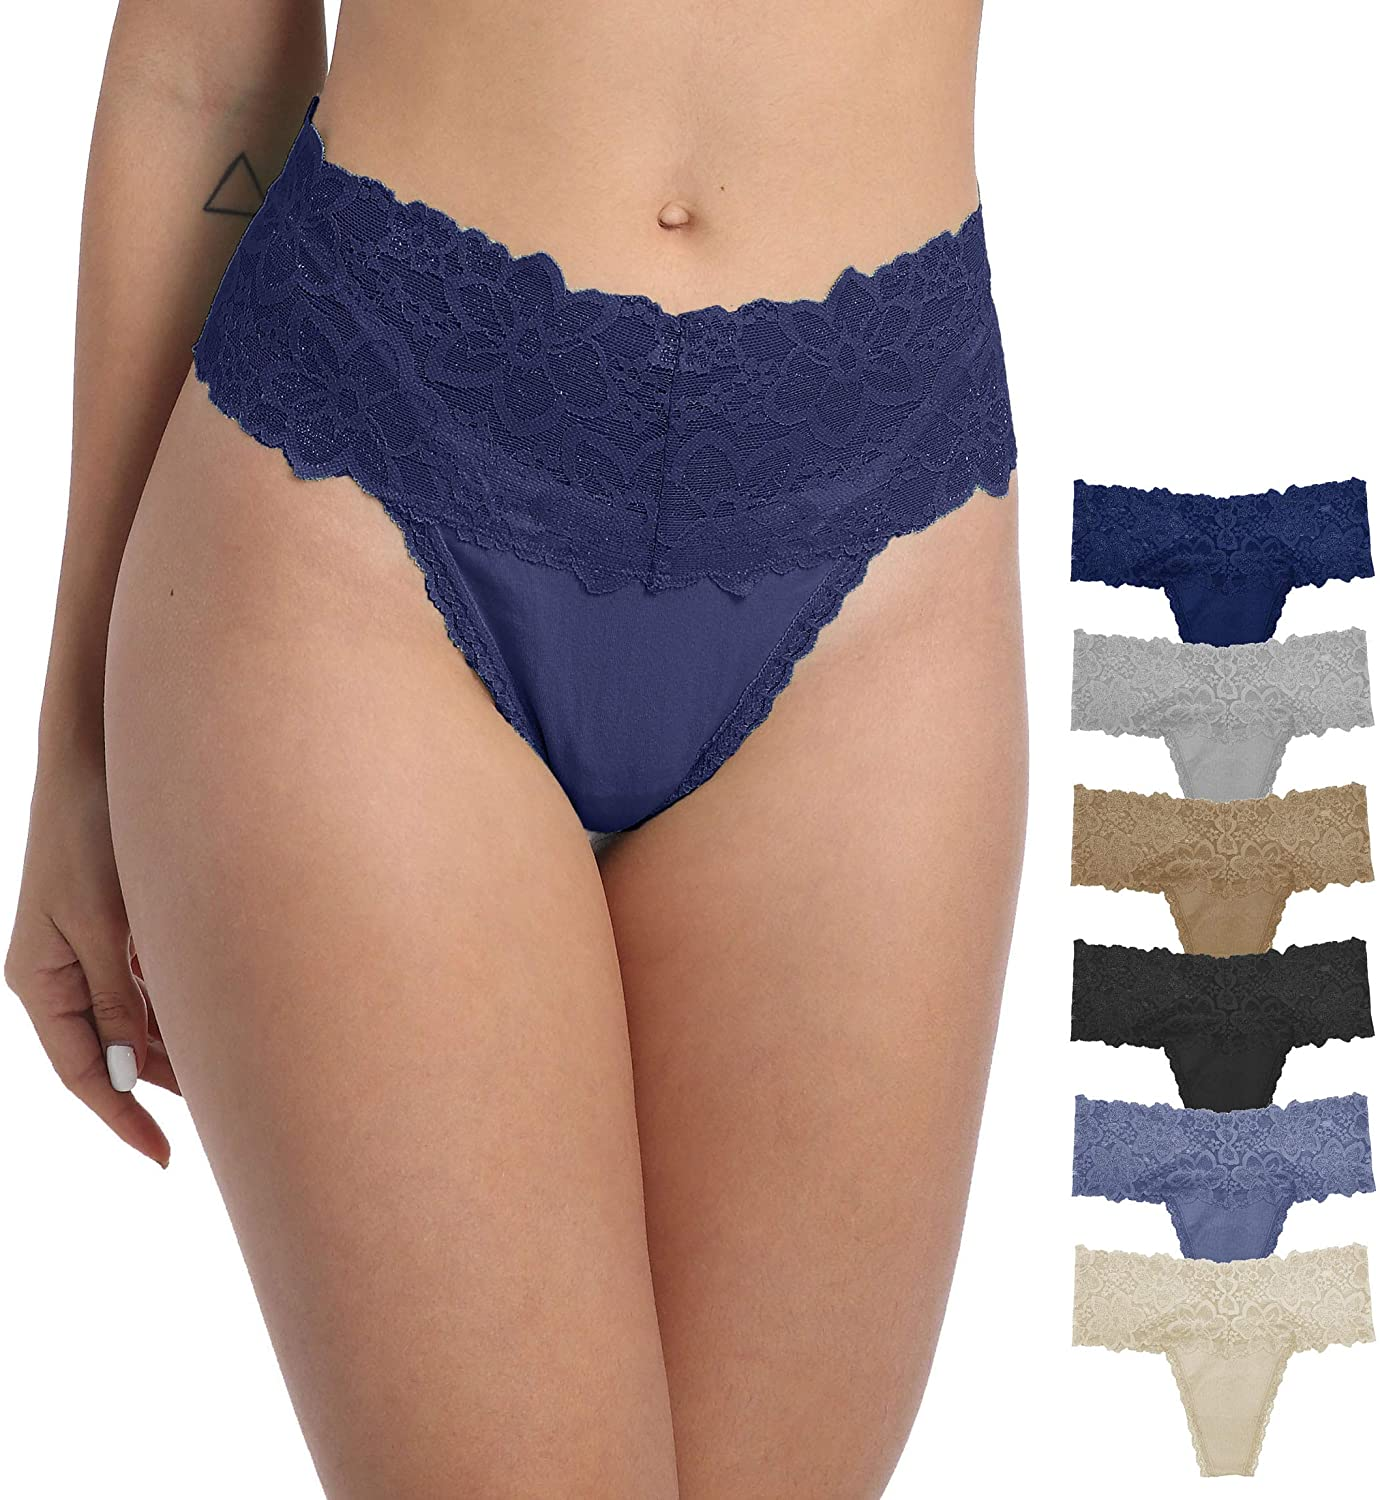 WKFIINM Pack of 6 Tangas Sexy for Max 87% OFF Thongs Women Denver Mall Hig Cotton Retro